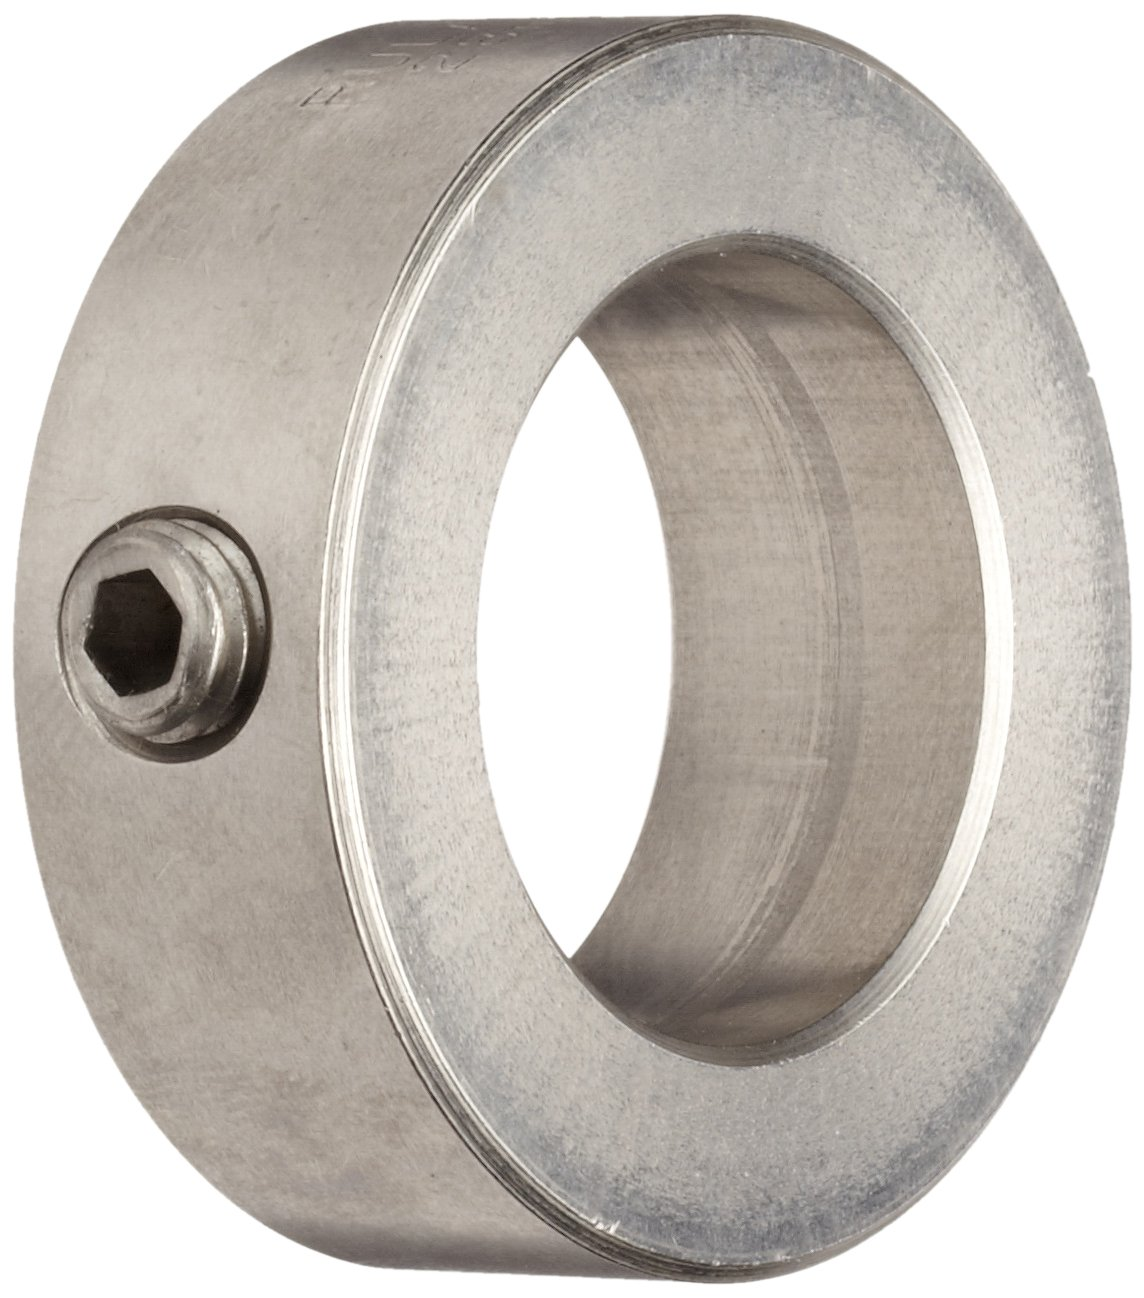 Ruland MSC-4-SS Set Screw Shaft Collar, Stainless Steel, Metric, 4mm Bore, 8mm OD, 5mm Width (Pack of 4)